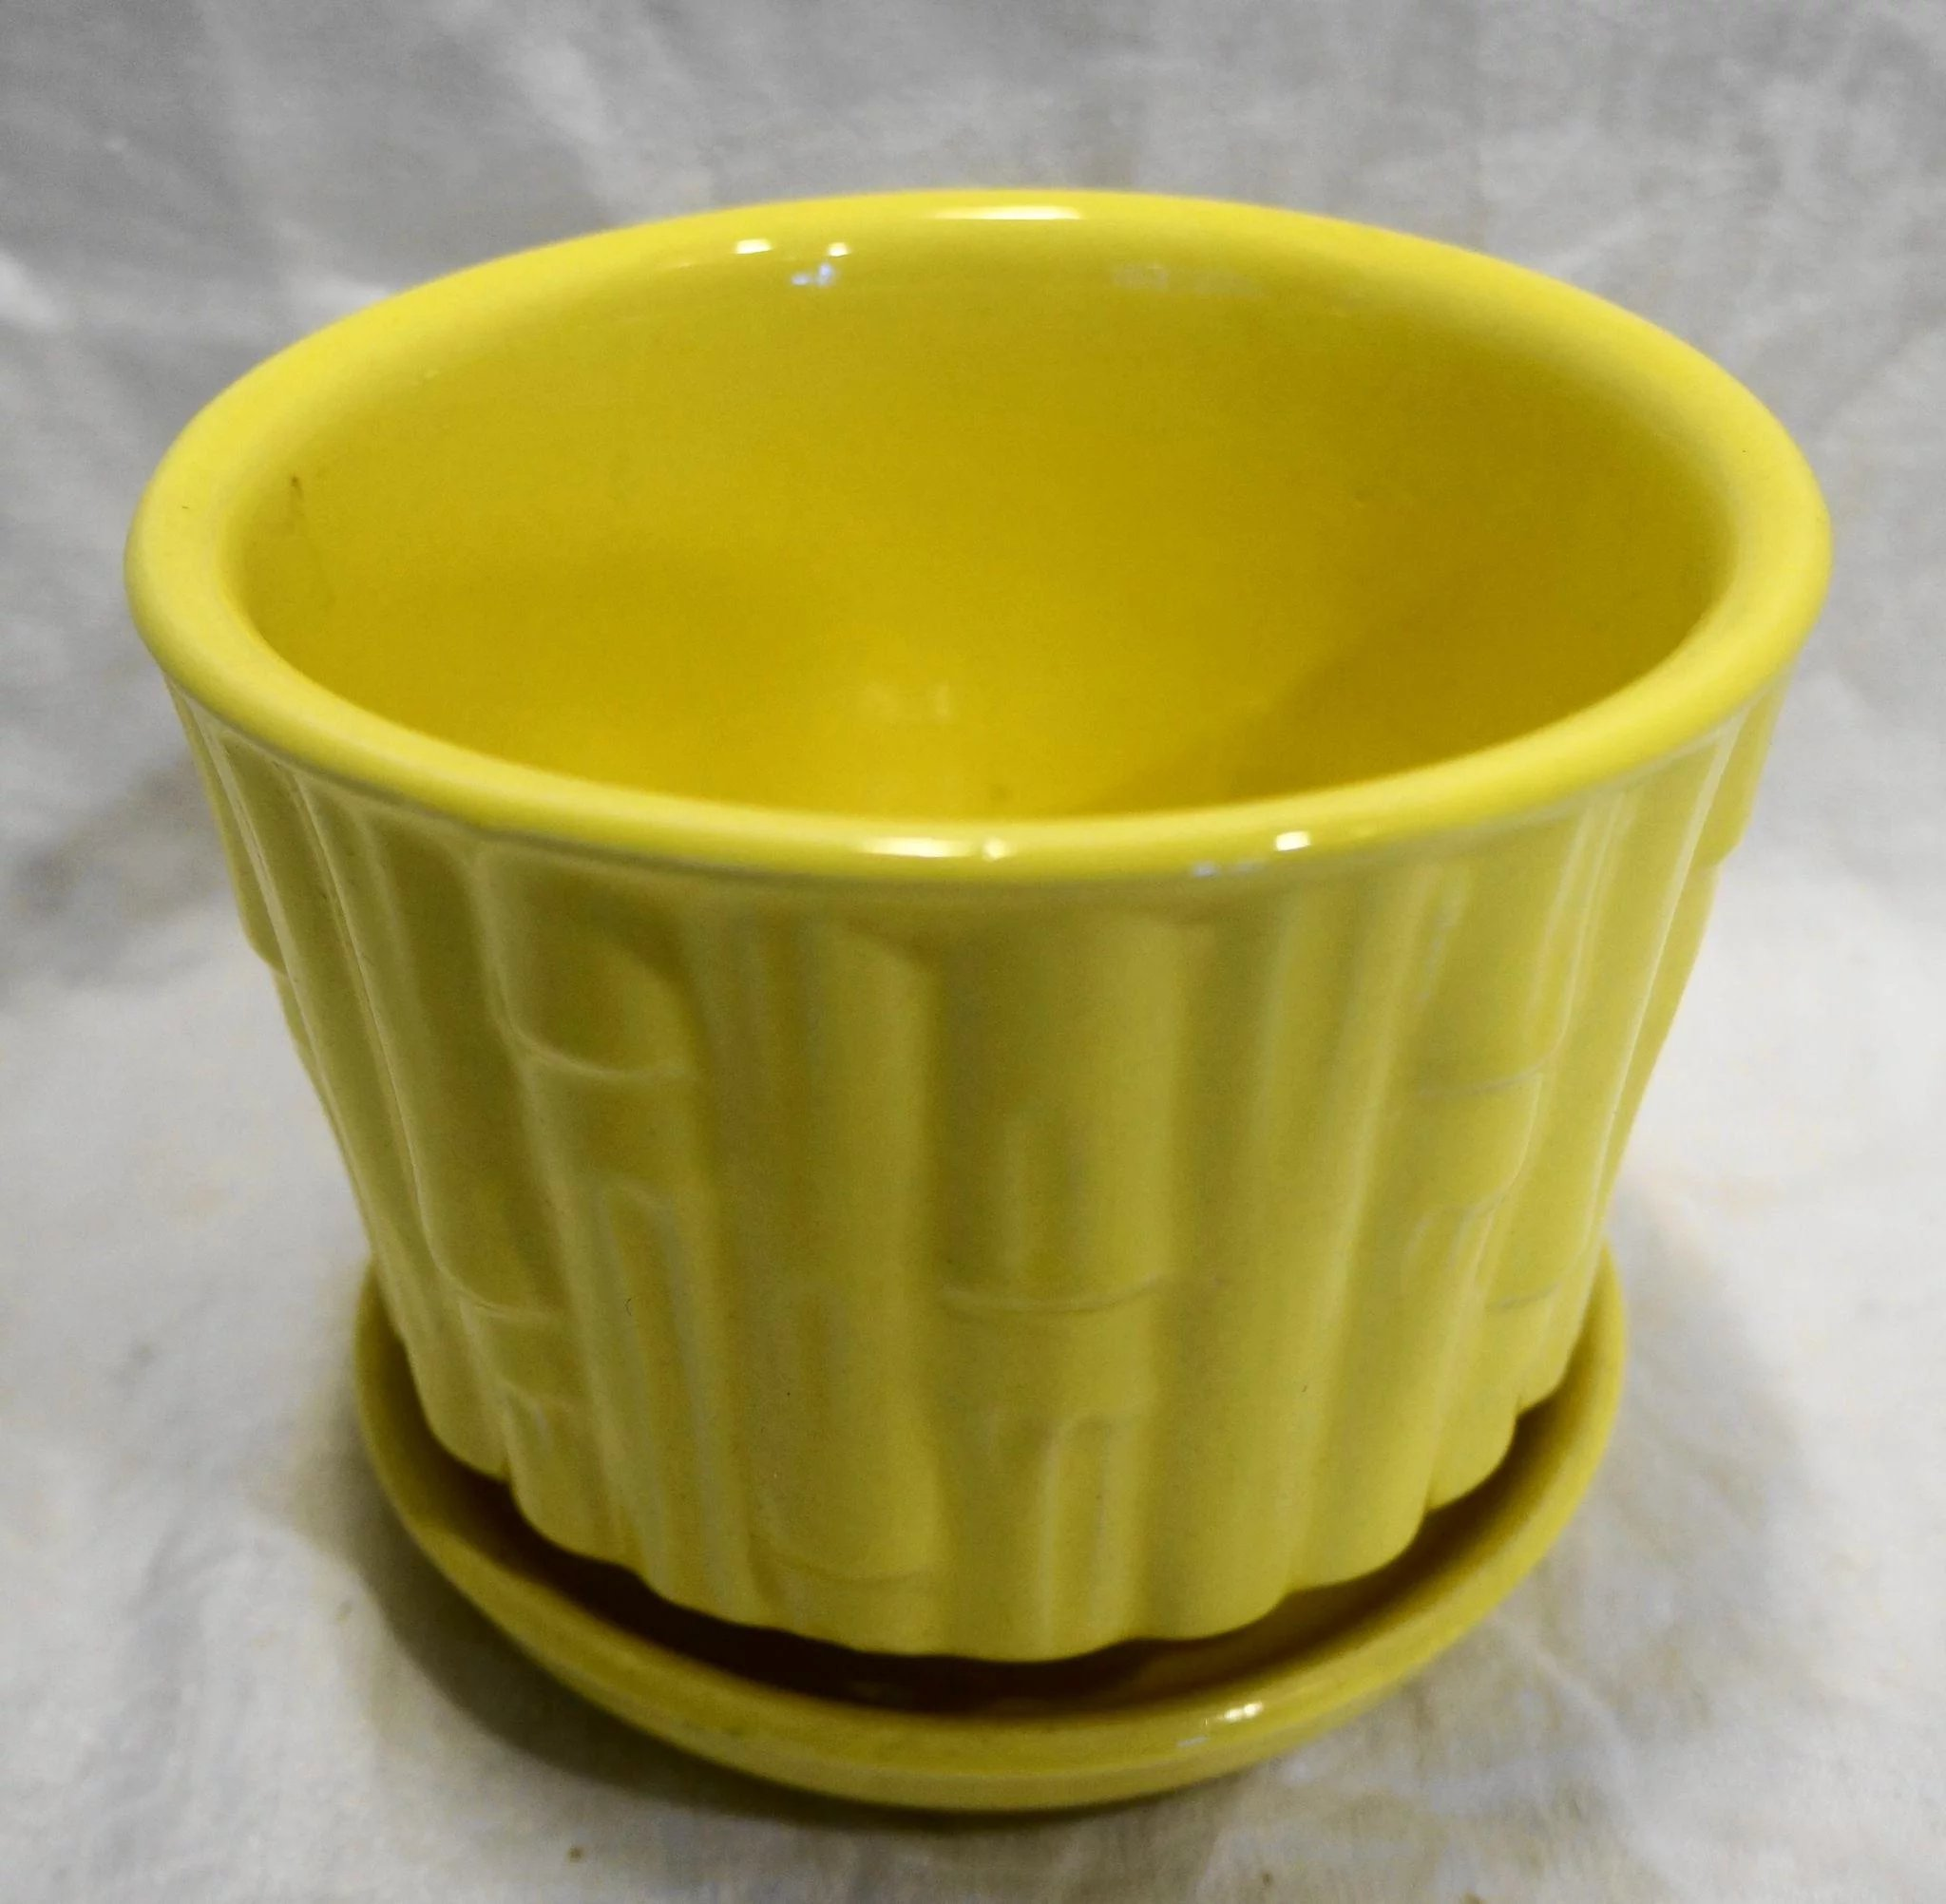 Mccoy Bamboo Bright Yellow Flower Pot Planter With Saucer 0373